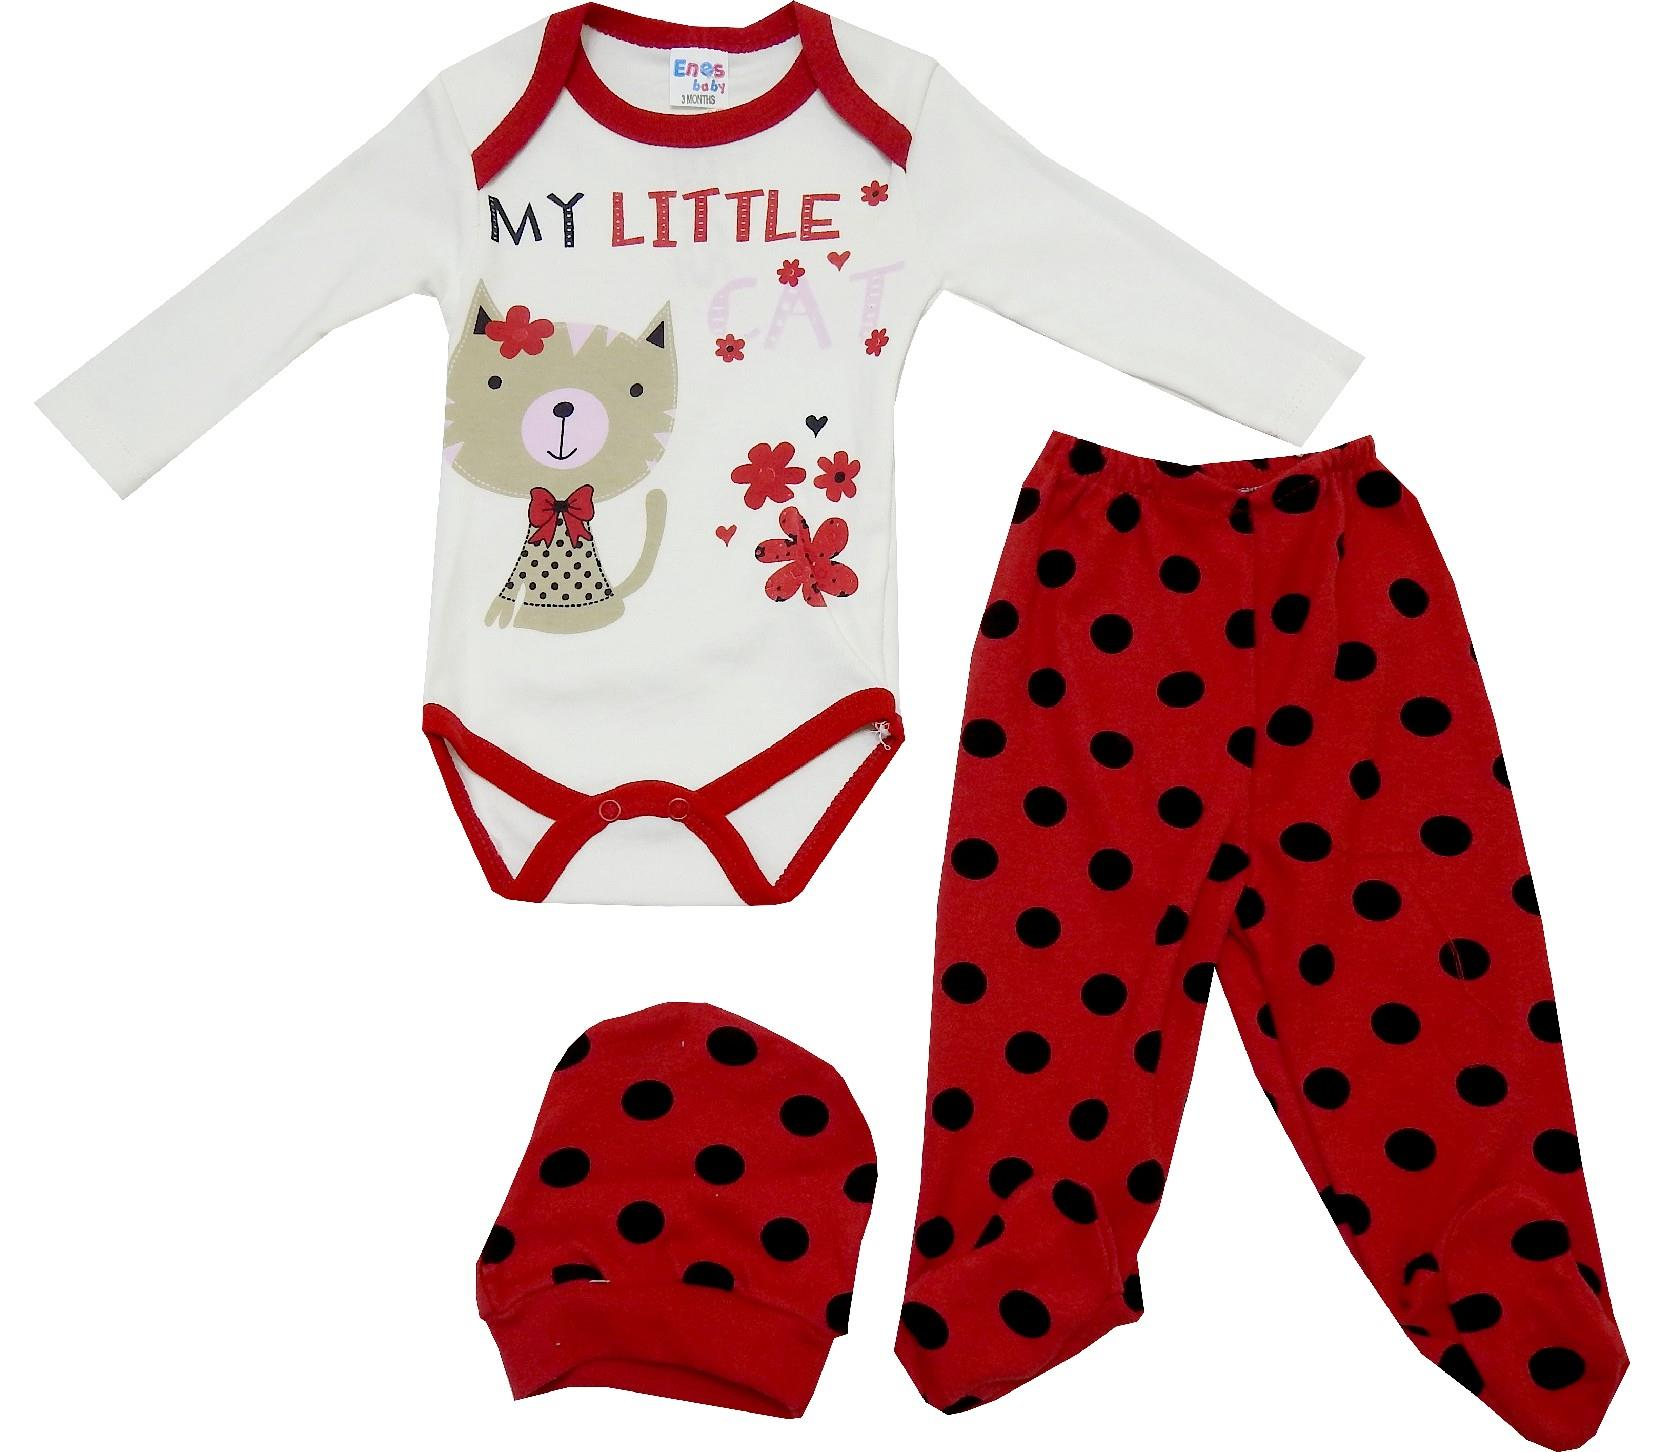 ASSORTED PRINTED DESIGN BODYSUIT, BEANIE, TROUSER TRIPLE SET FOR GIRL (3-6 MONTH)